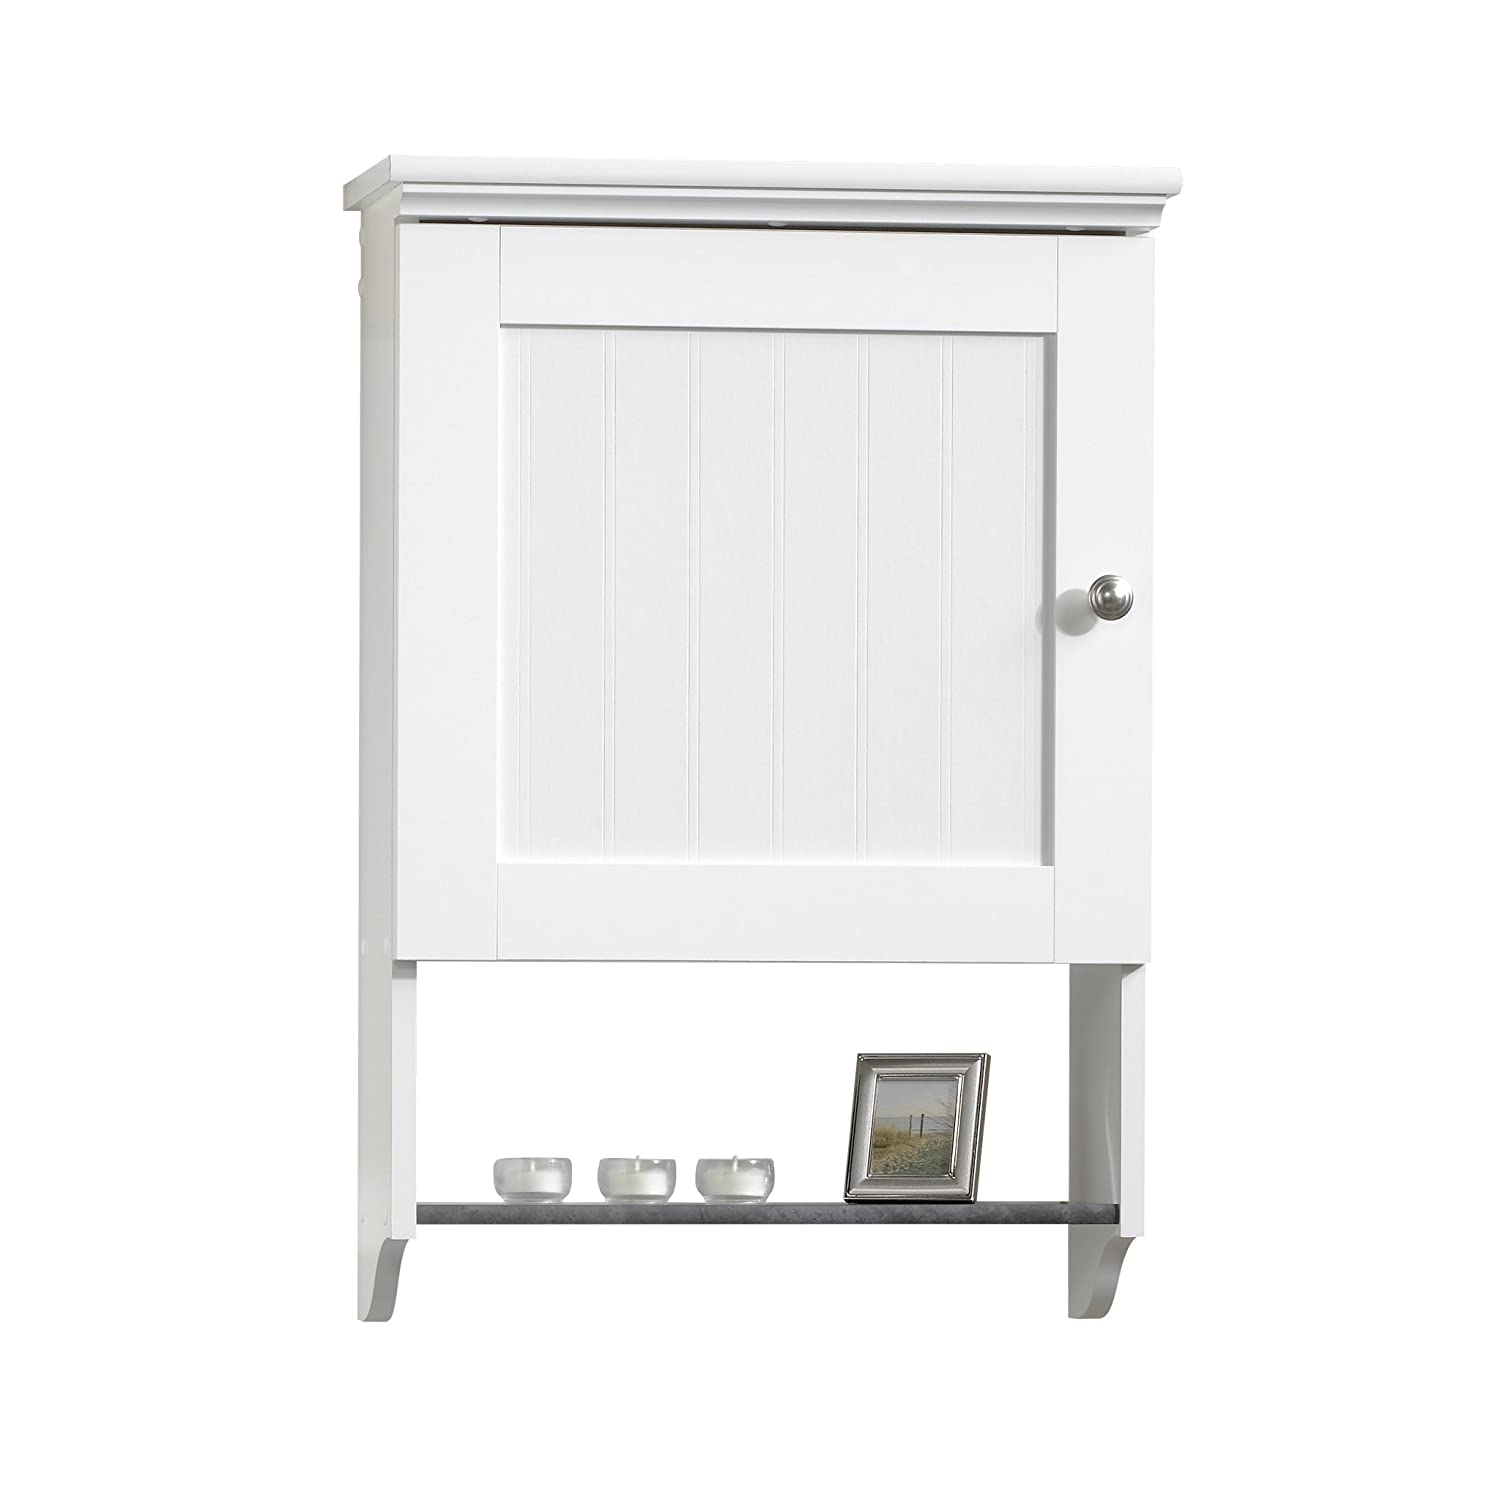 Sauder Wall Cabinet, Soft White Finish 414061